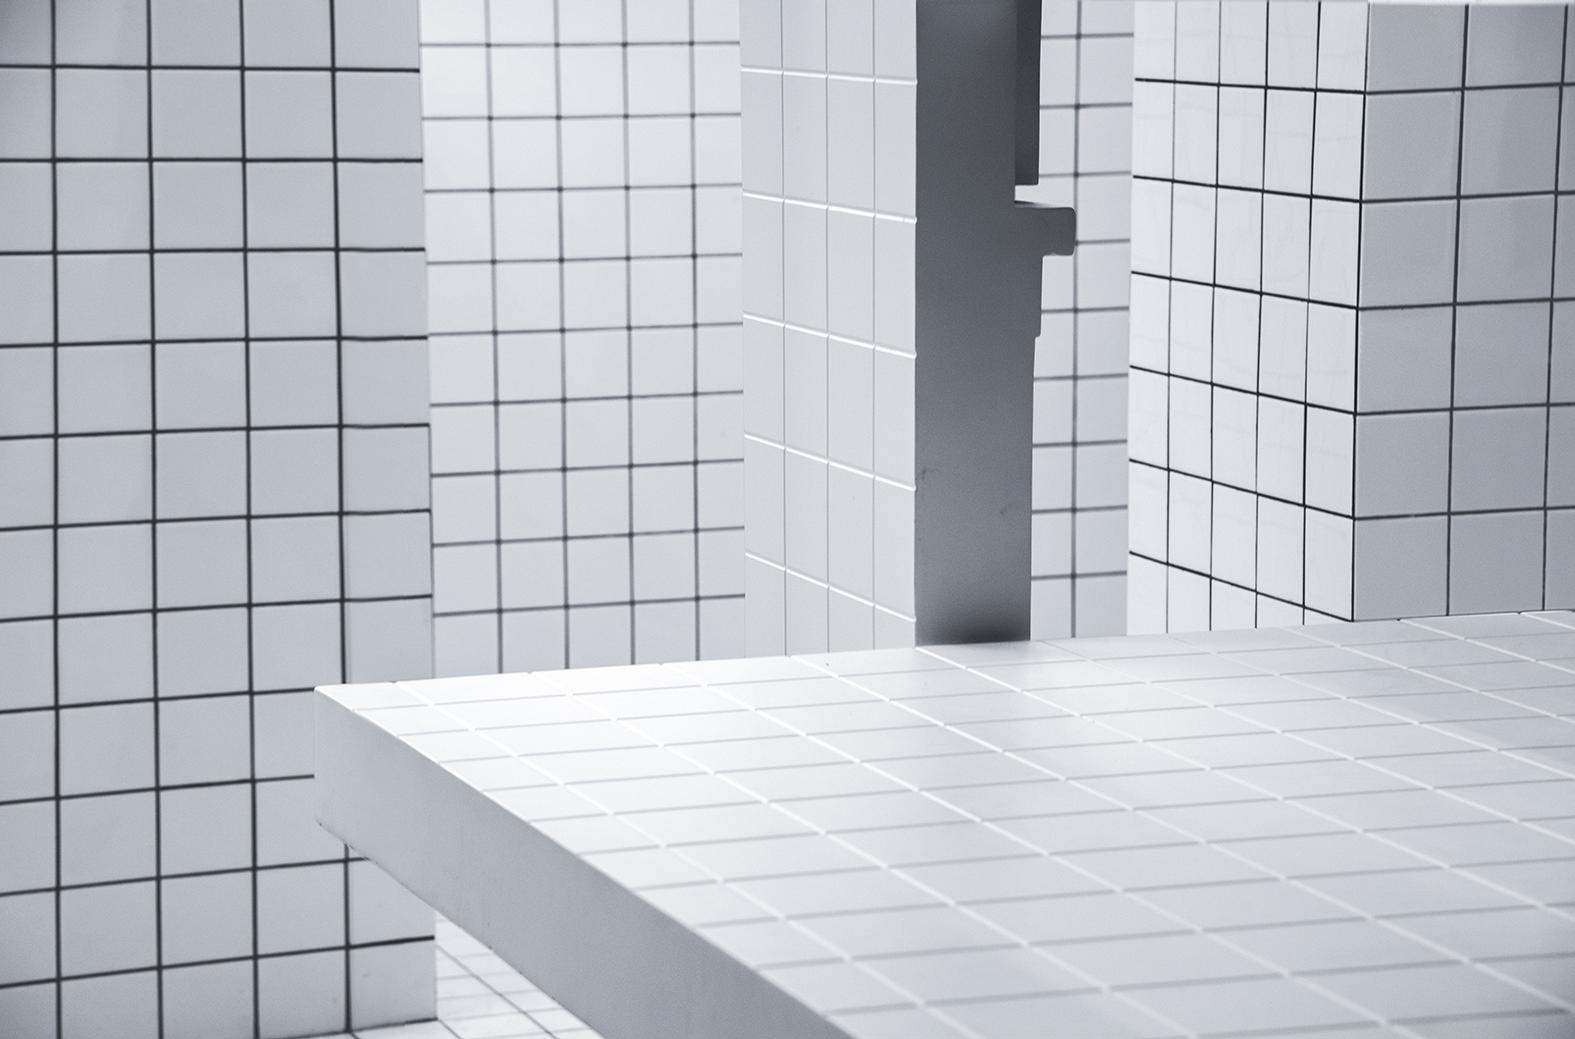 The floors, walls, and counter are covered in a white, tiled grid graphi / Unknown Works